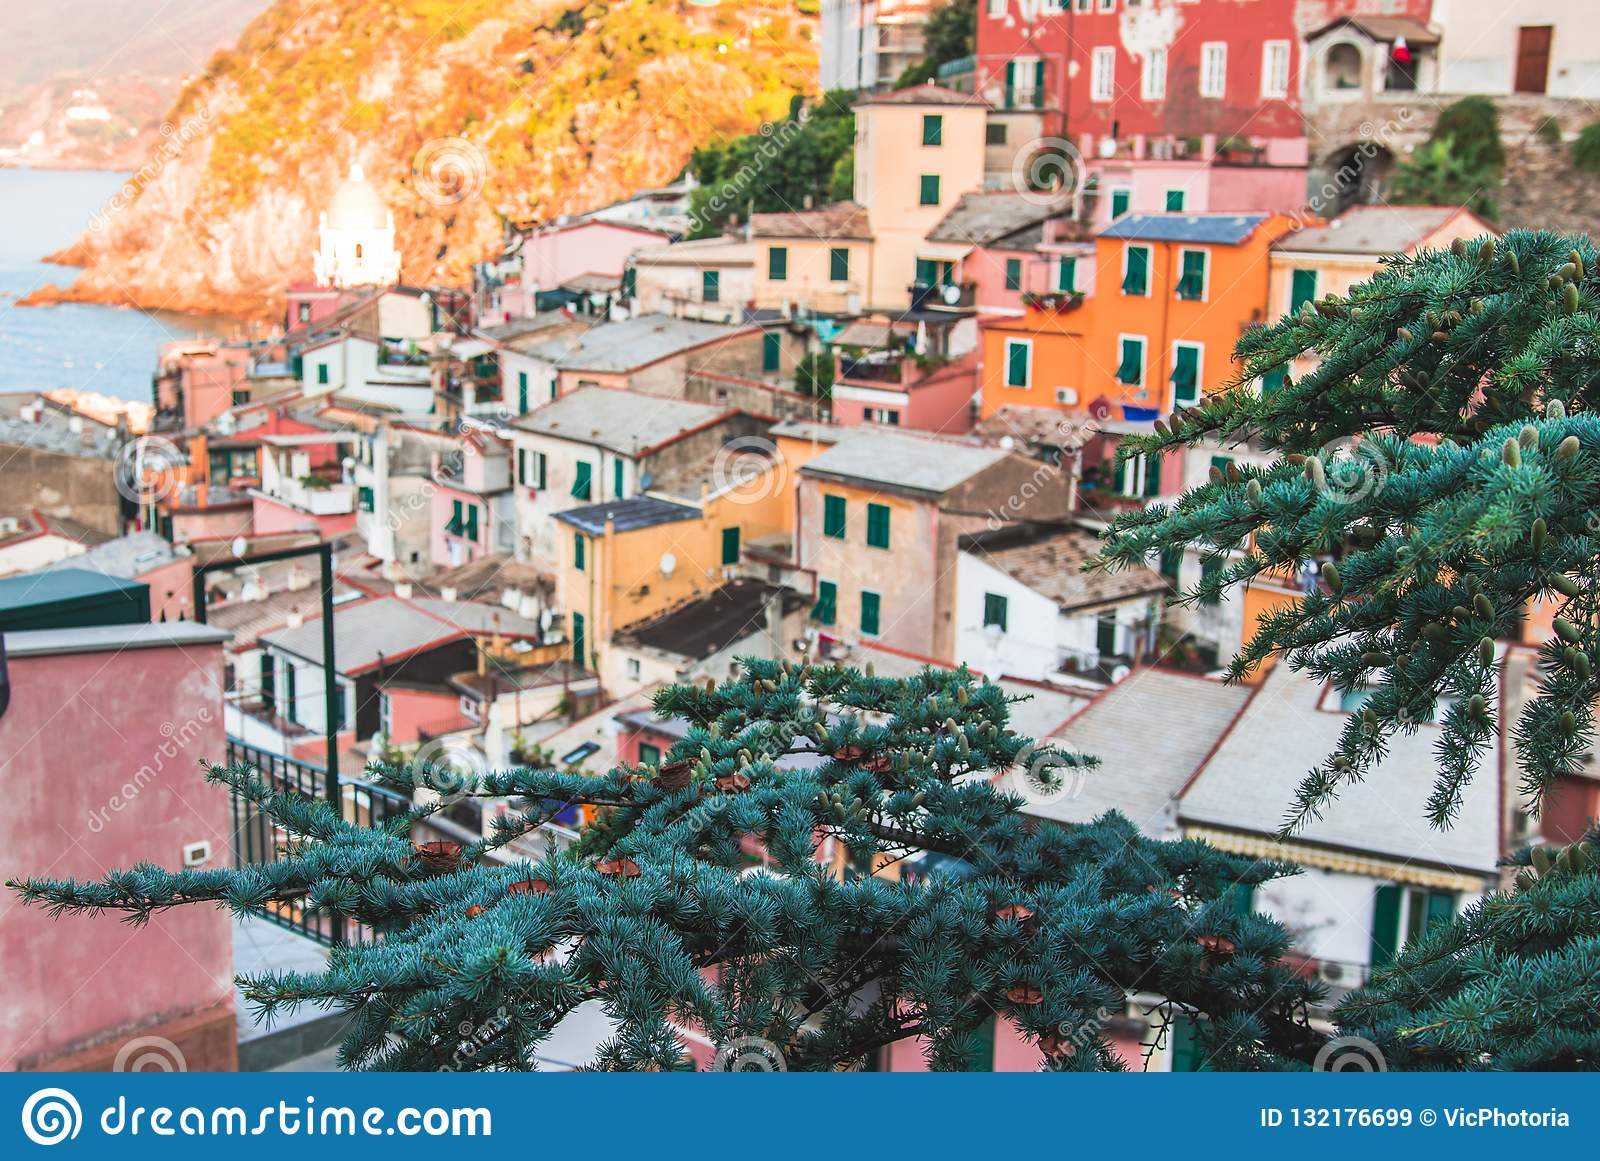 Famous view of the Vernazza old town Italy Cinque terre in the early morning sunrise view, colorful traditional building houses an